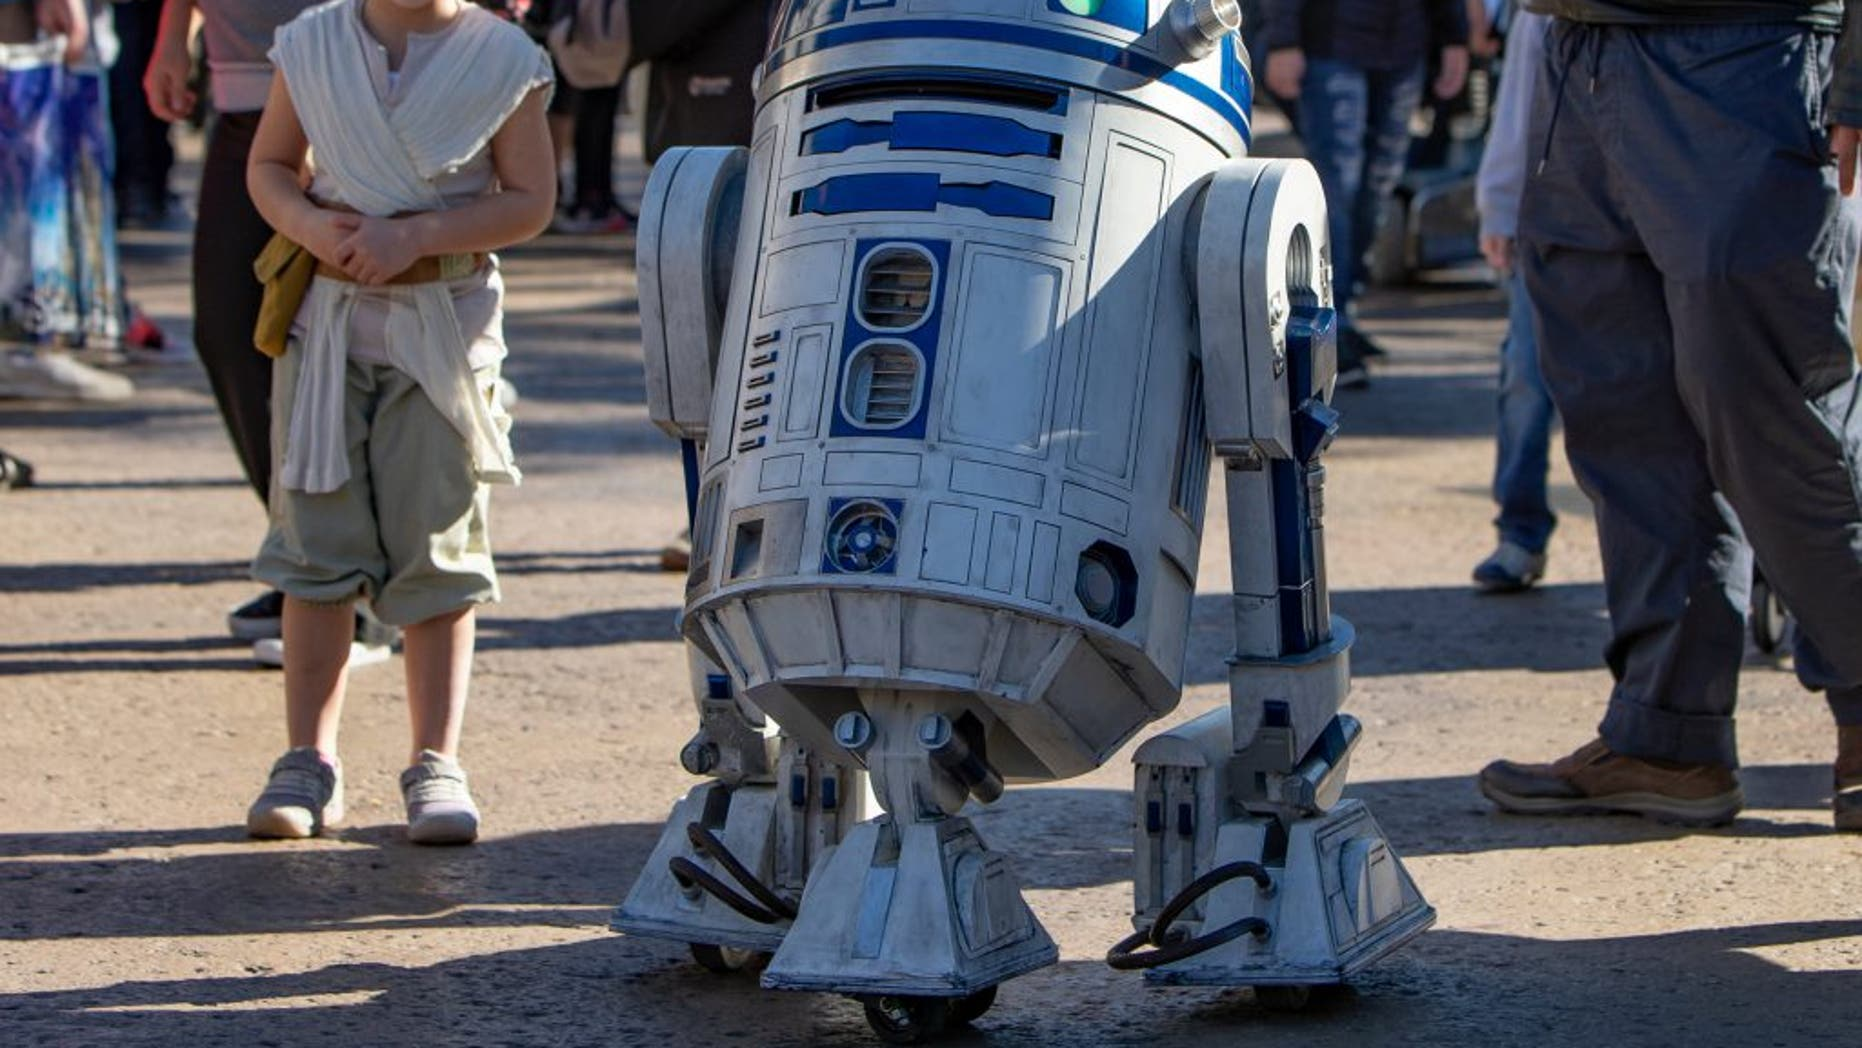 Westlake Legal Group R2DisneyParksBlog R2-D2 now 'gliding around' Disneyland's Galaxy's Edge, bleeping, blorping Michael Bartiromo fox-news/travel/general/theme-parks fox-news/travel/general/disney fox news fnc/travel fnc c00389ac-2b54-5666-90a7-14033f658b2f article